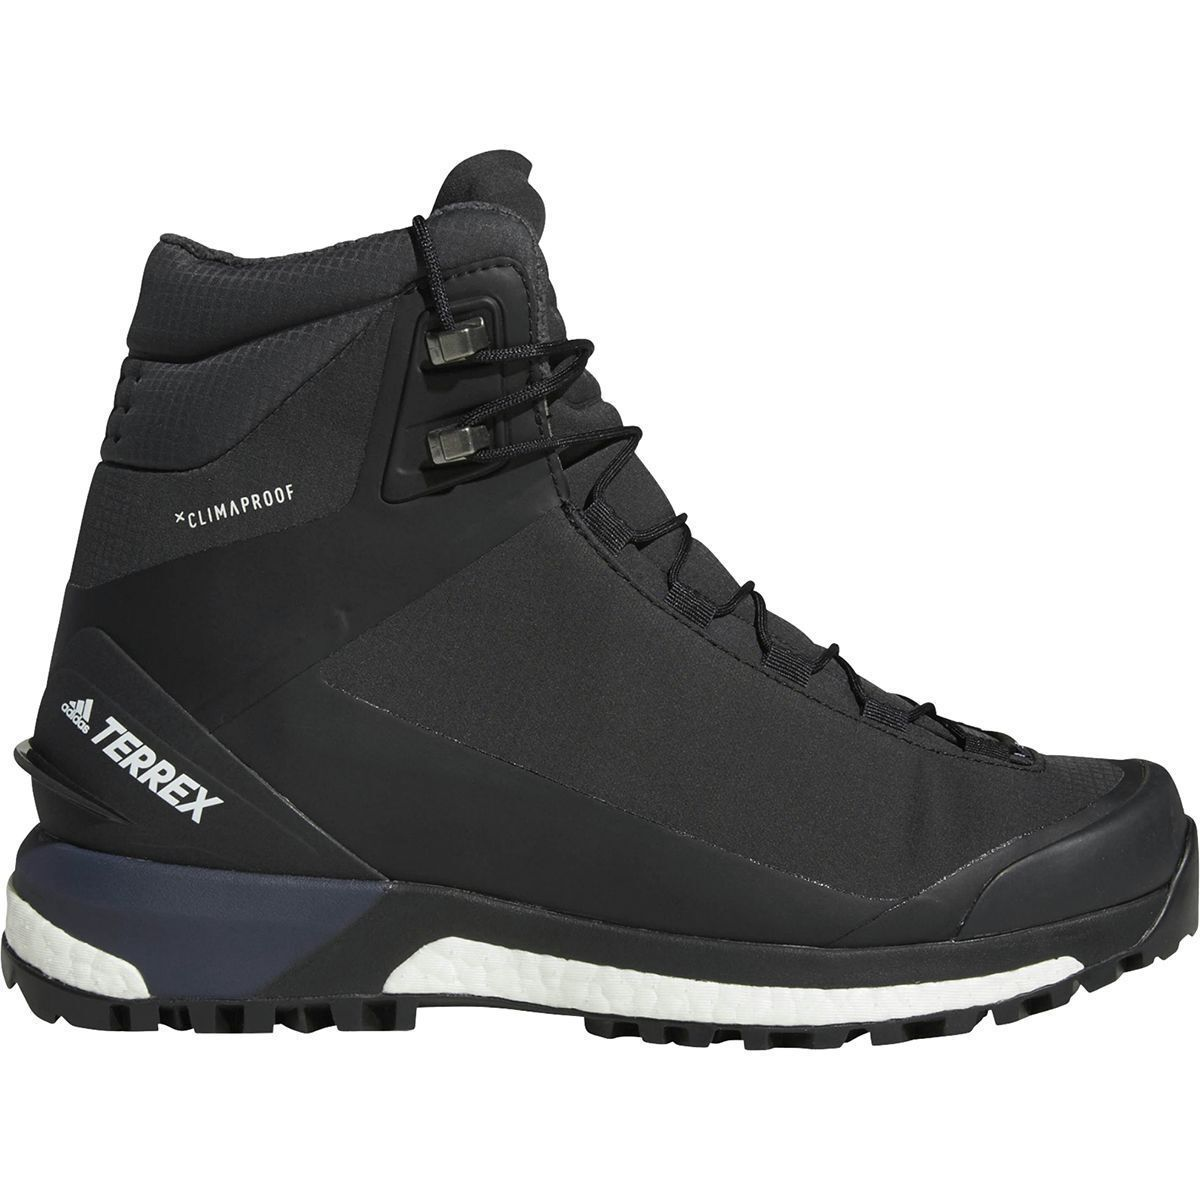 Adidas Men's Terrex Tracefinder Winter Boot 8 Athletic shoes DS NEW Black AC7913